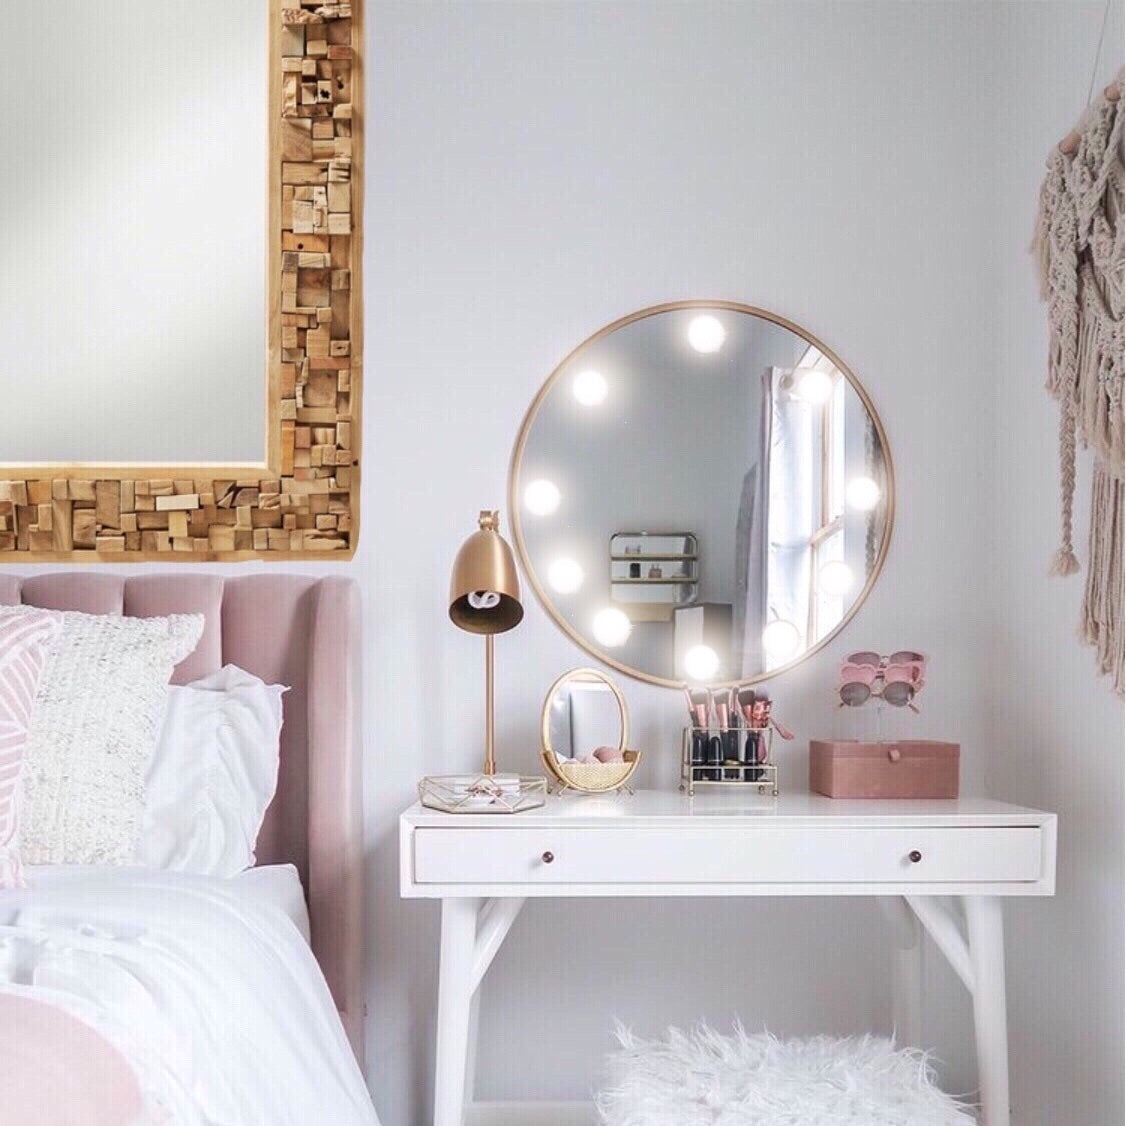 vanity-makeup-mirror-lights